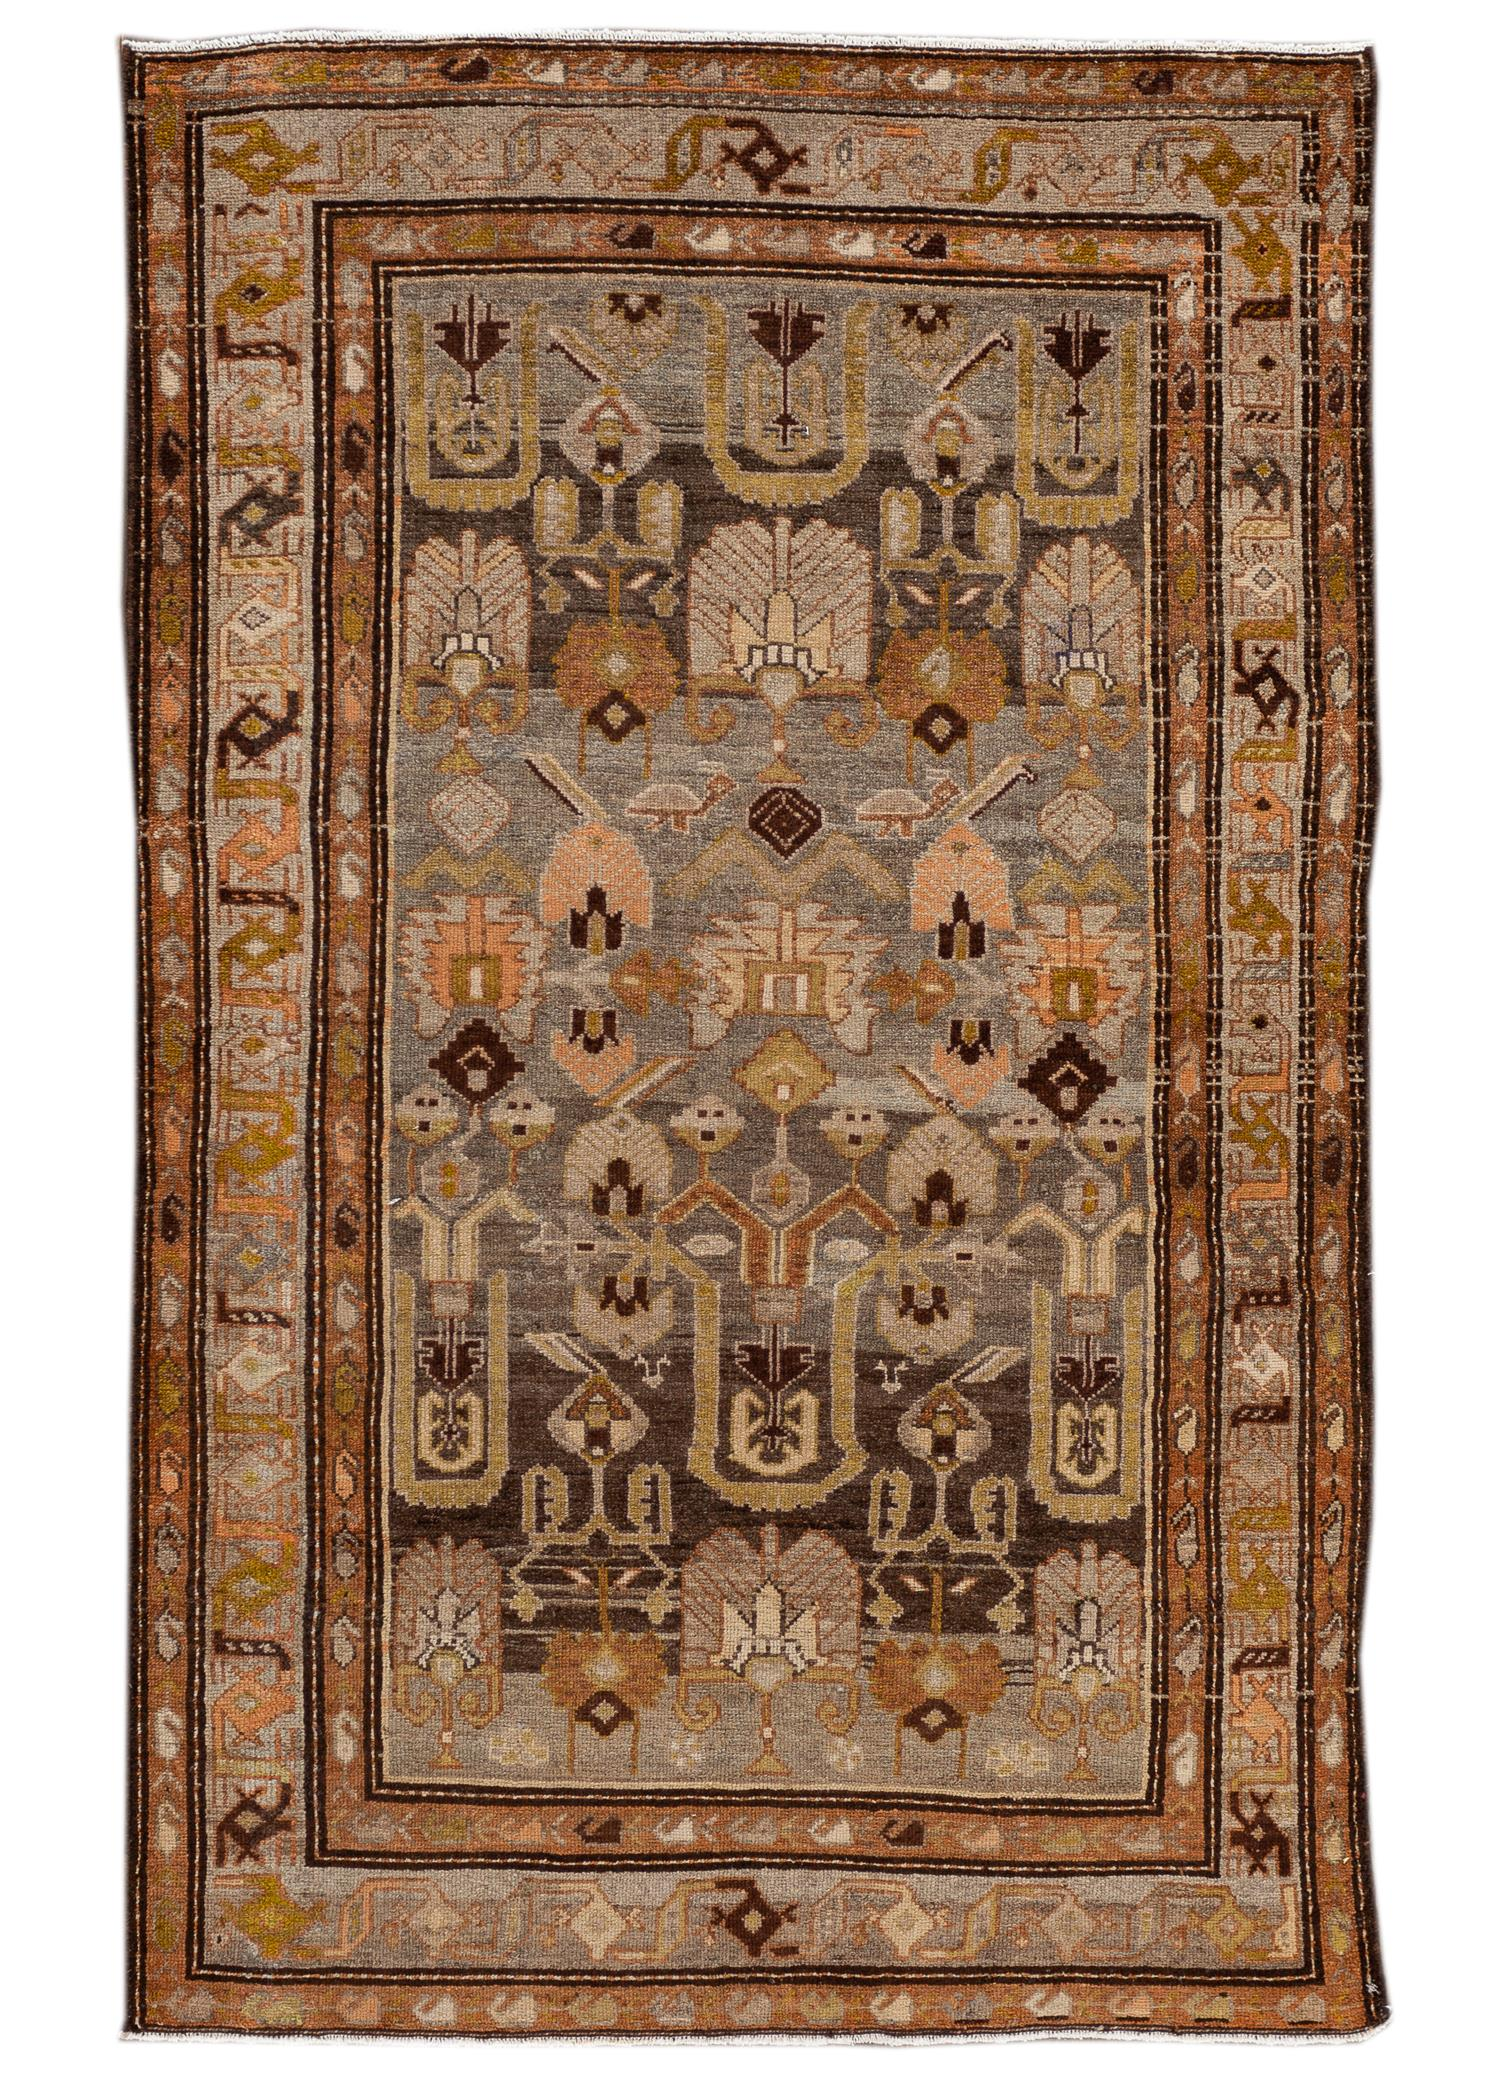 Antique Malayer Rug, #10235259, 4X7